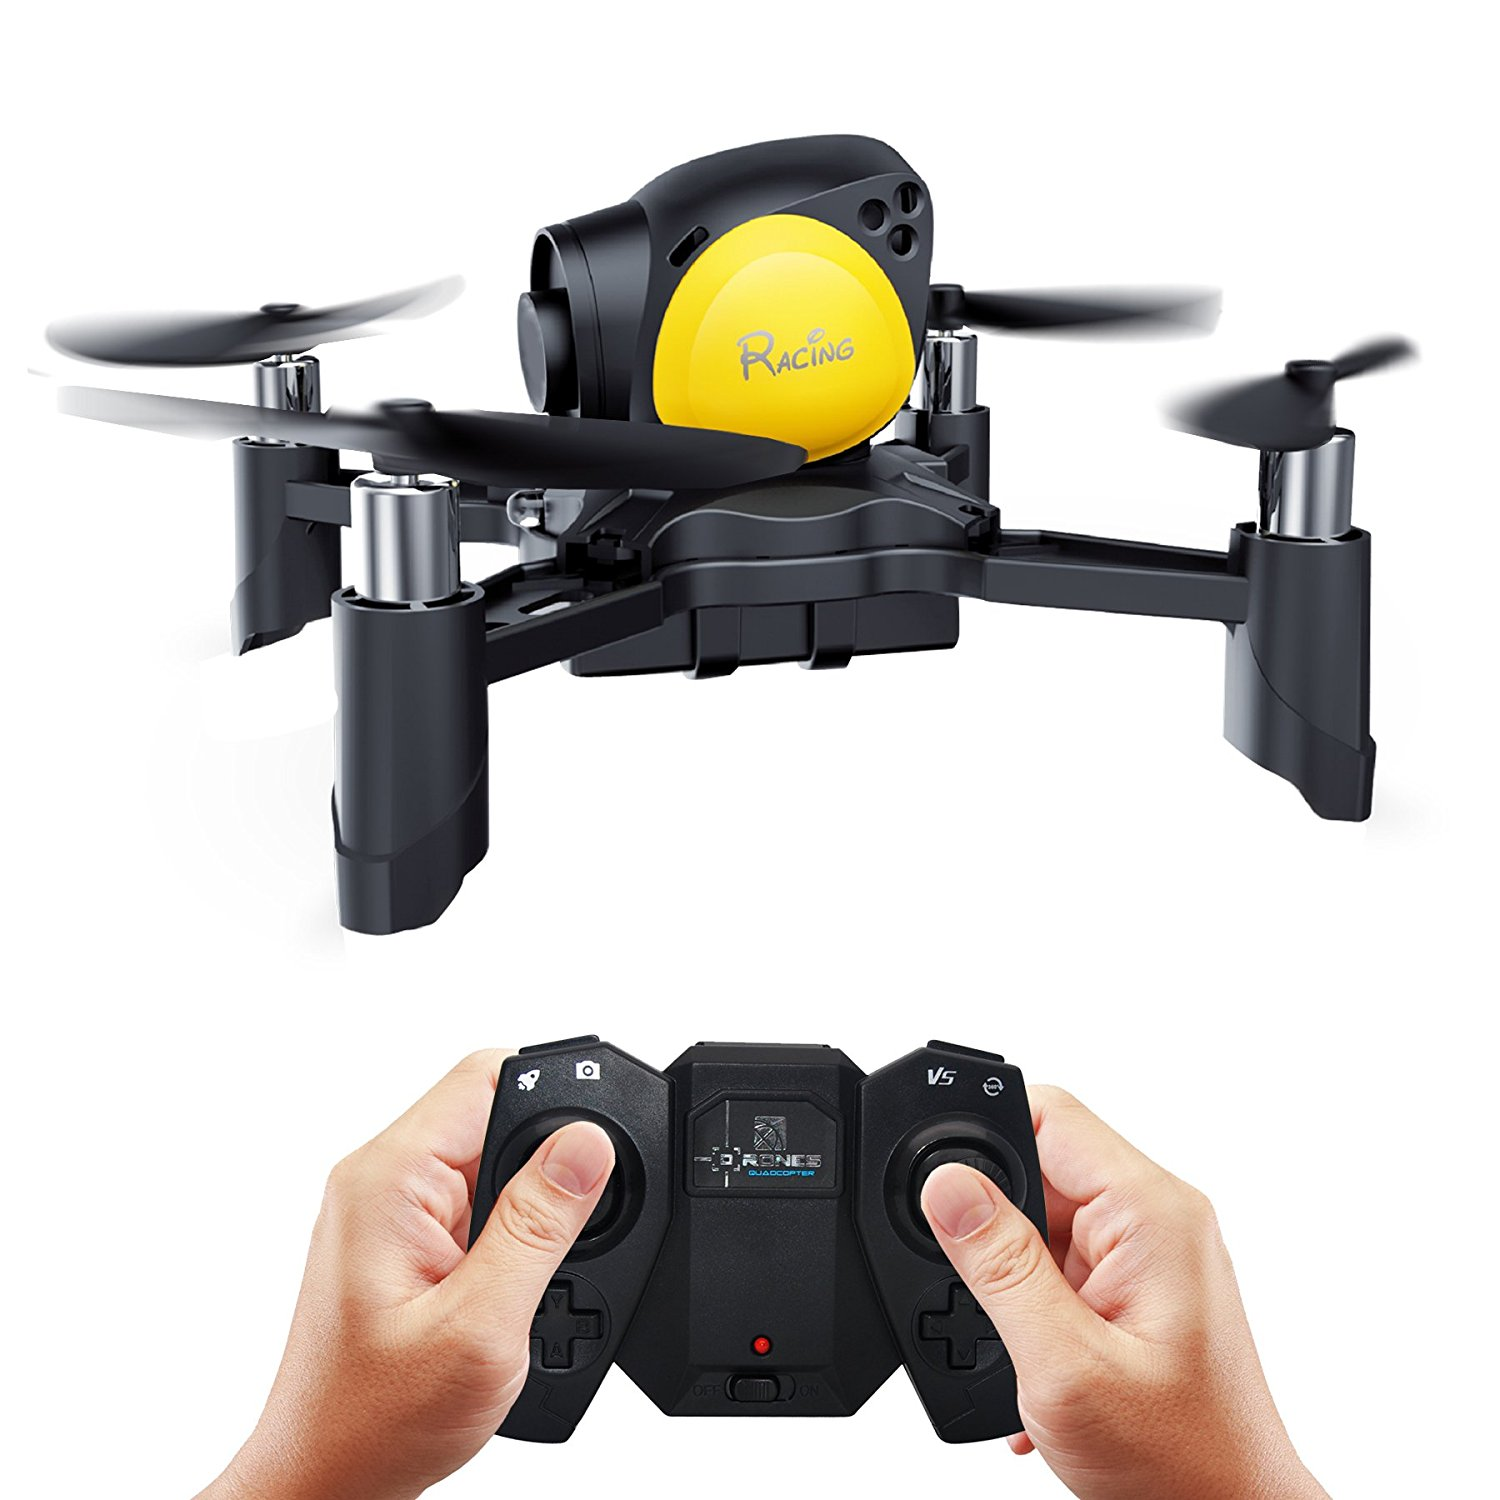 diy-drone-kit - The Nifty Nerd